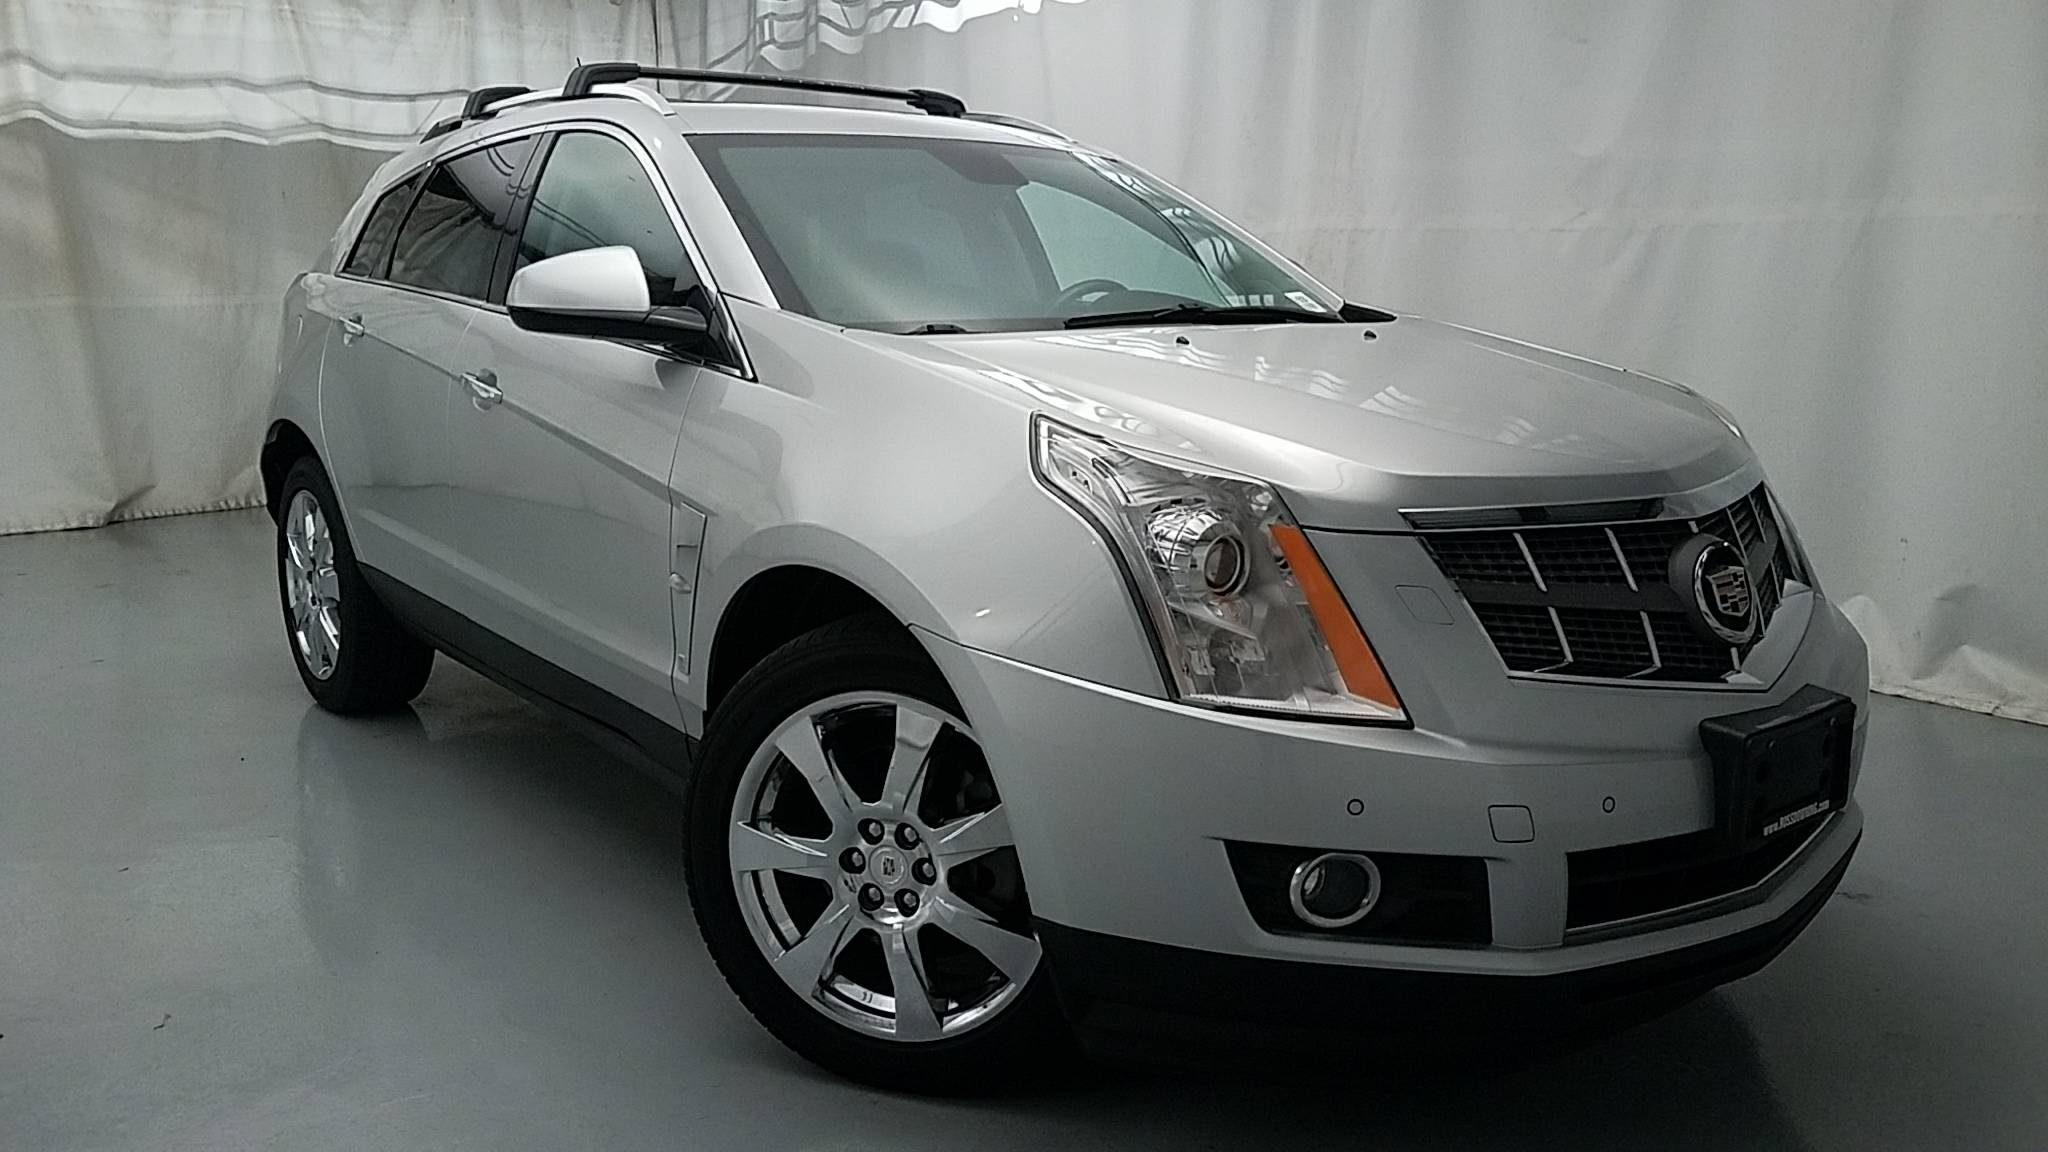 2011 Cadillac Cadillac Vehicles for Sale in Hammond